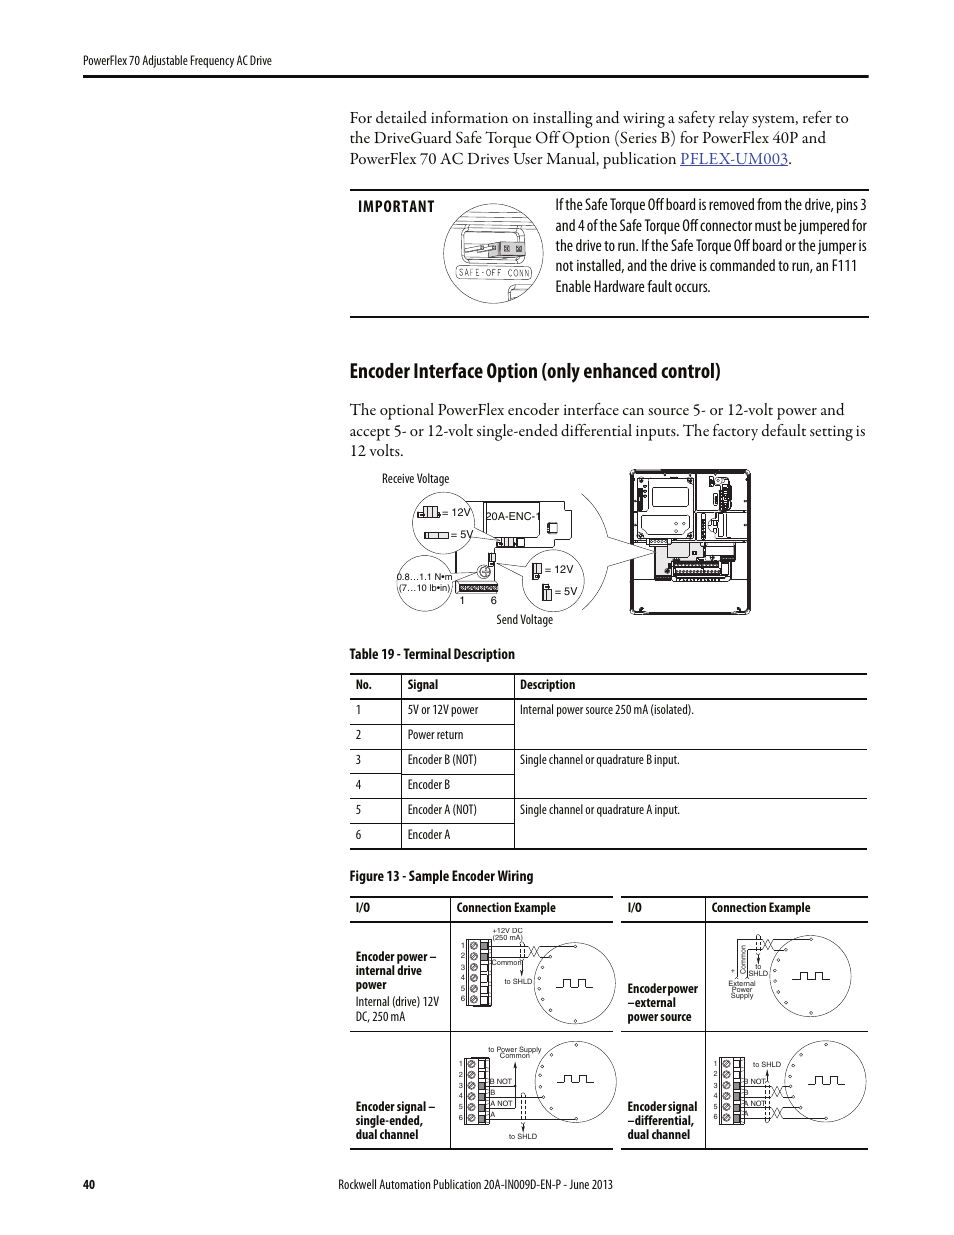 encoder interface option  only enhanced control